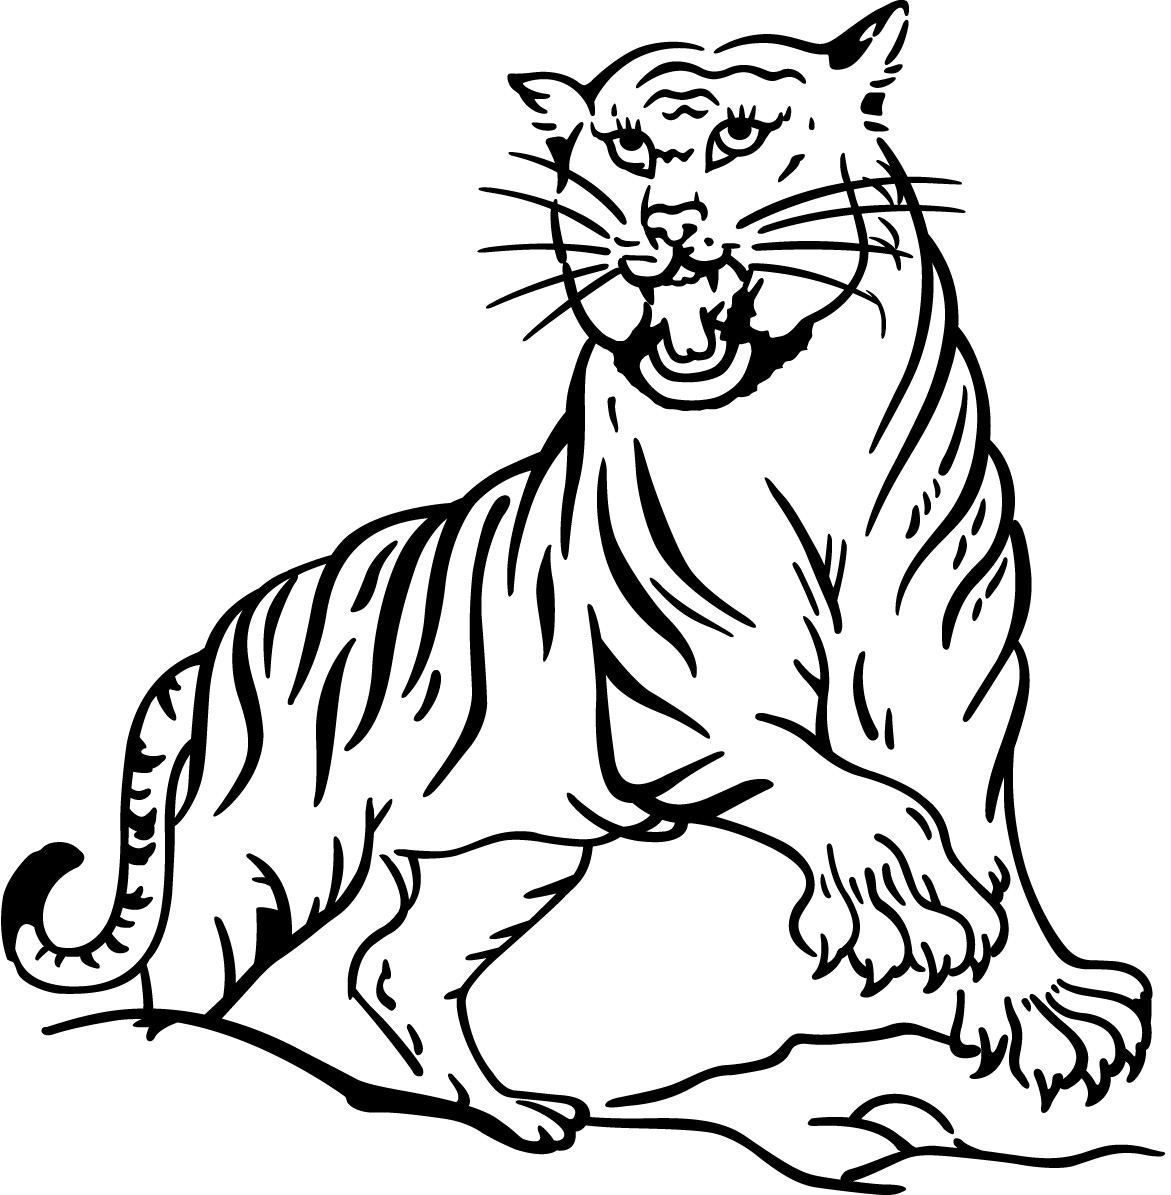 Tigers Coloring Pages | Coloring Kids